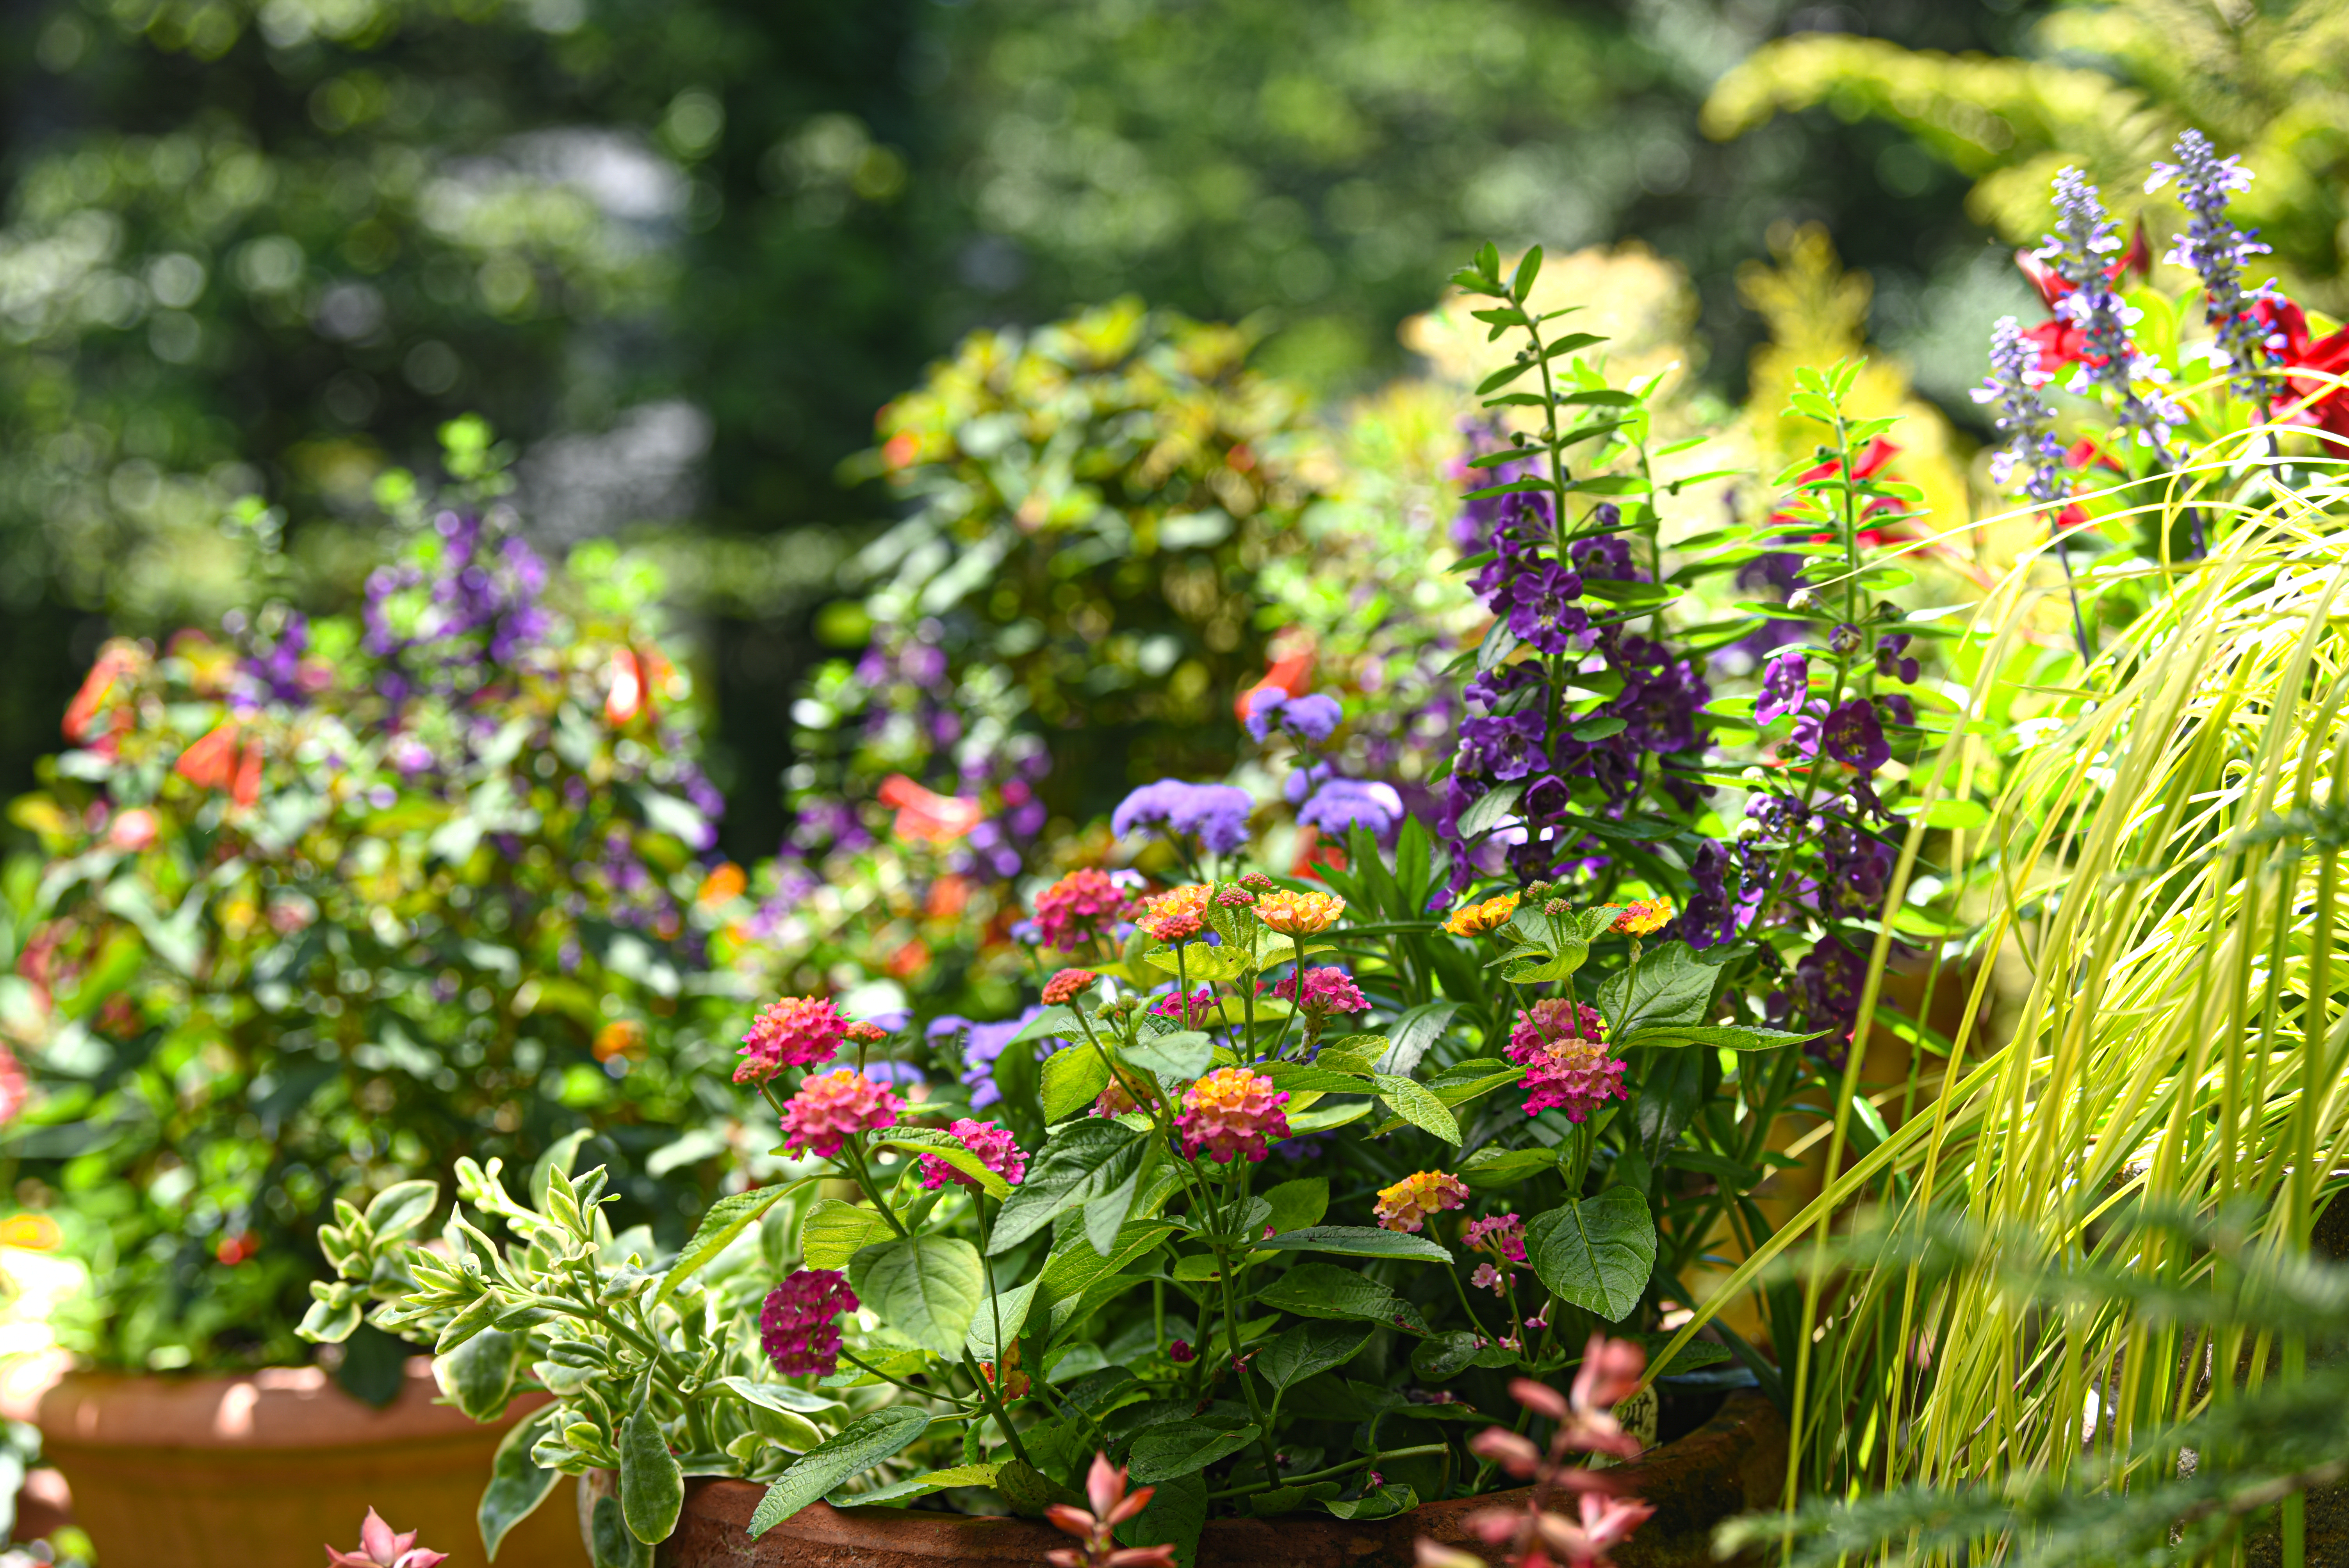 Container Gardens for Pollinators